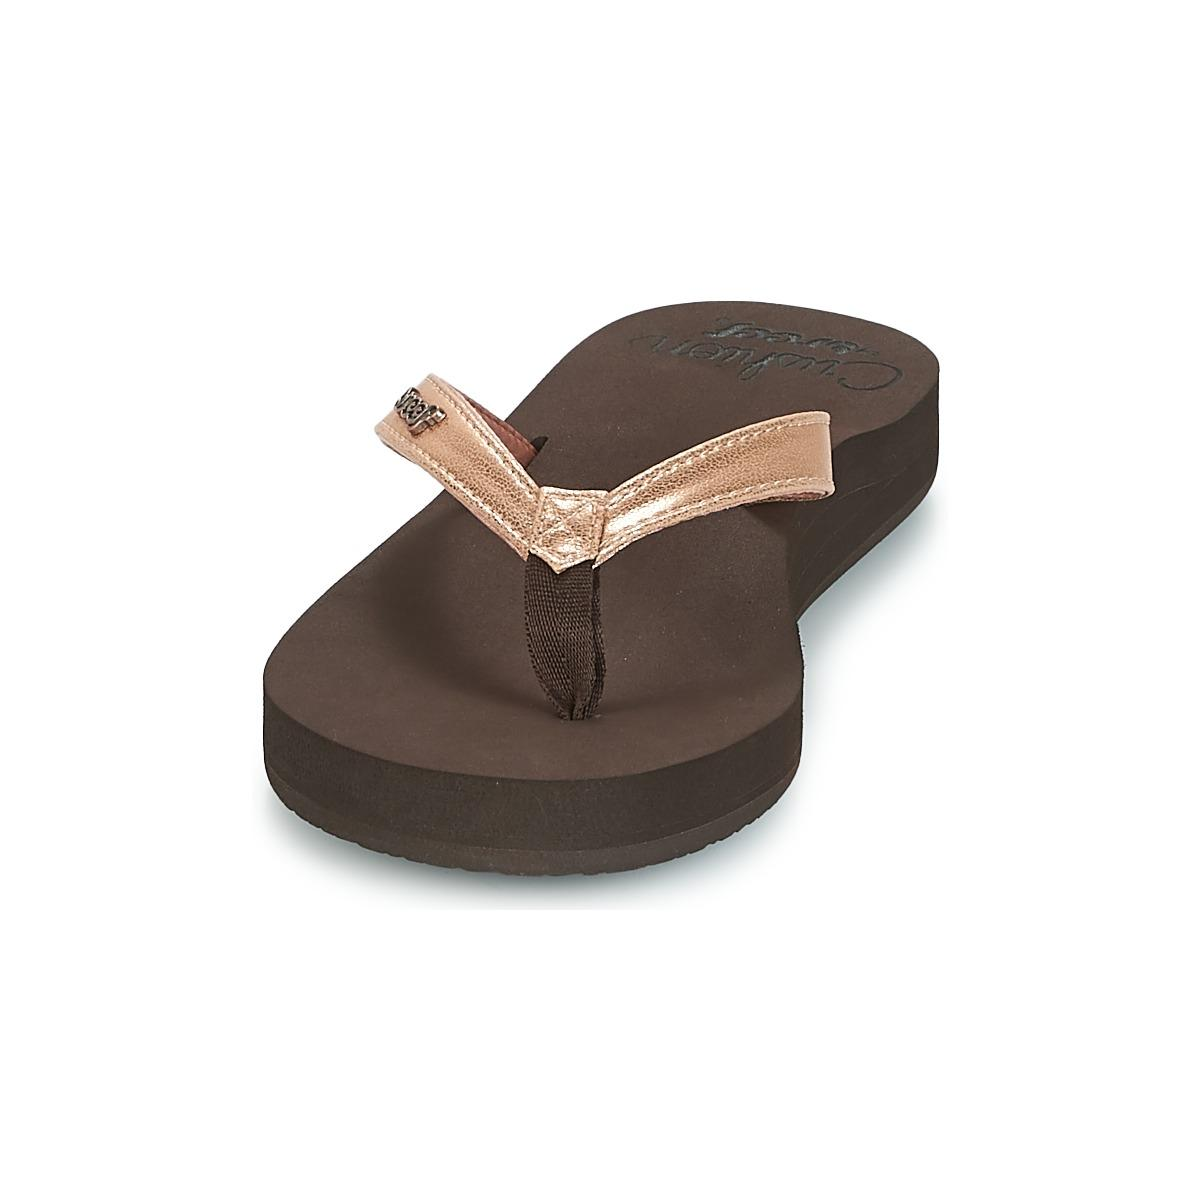 a75852dd83d597 Reef - Cushion Luna Women s Flip Flops   Sandals (shoes) In Brown - Lyst.  View fullscreen